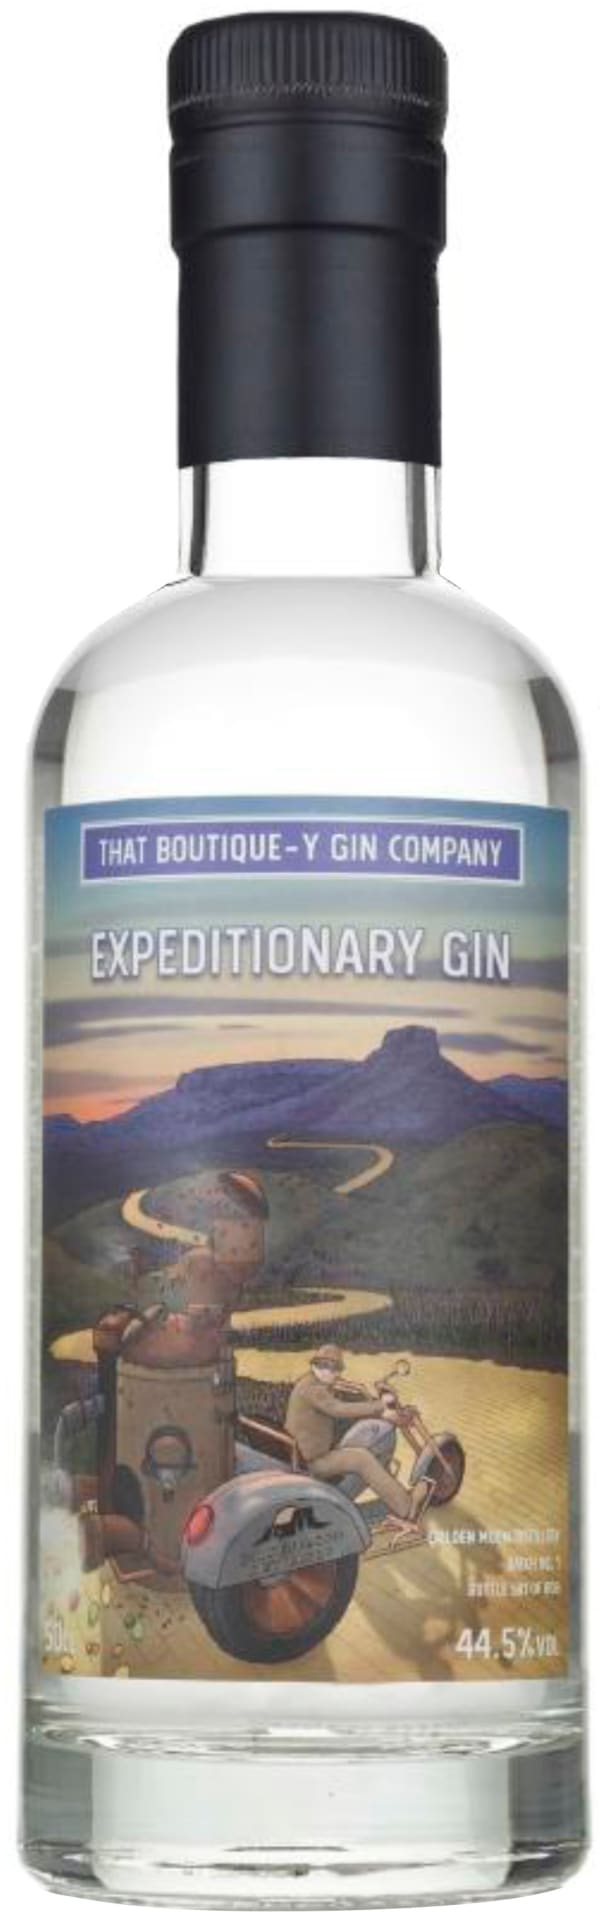 That Boutique-y Gin Company Expeditionary Gin